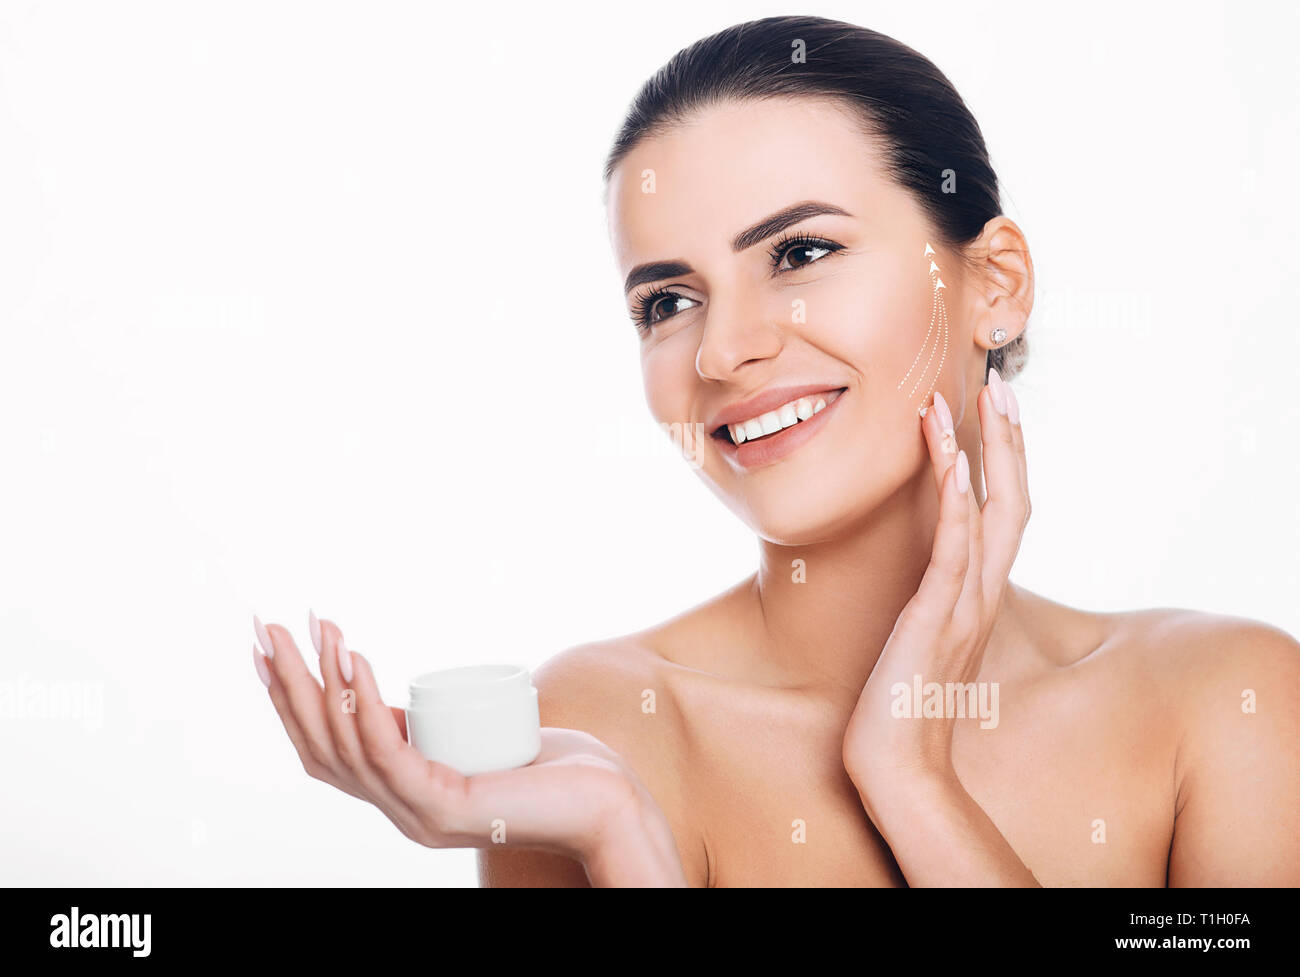 smiling woman with lifting arrows on face applying moisturizer on skin. Concept of moisturizer skin lifting - Stock Image